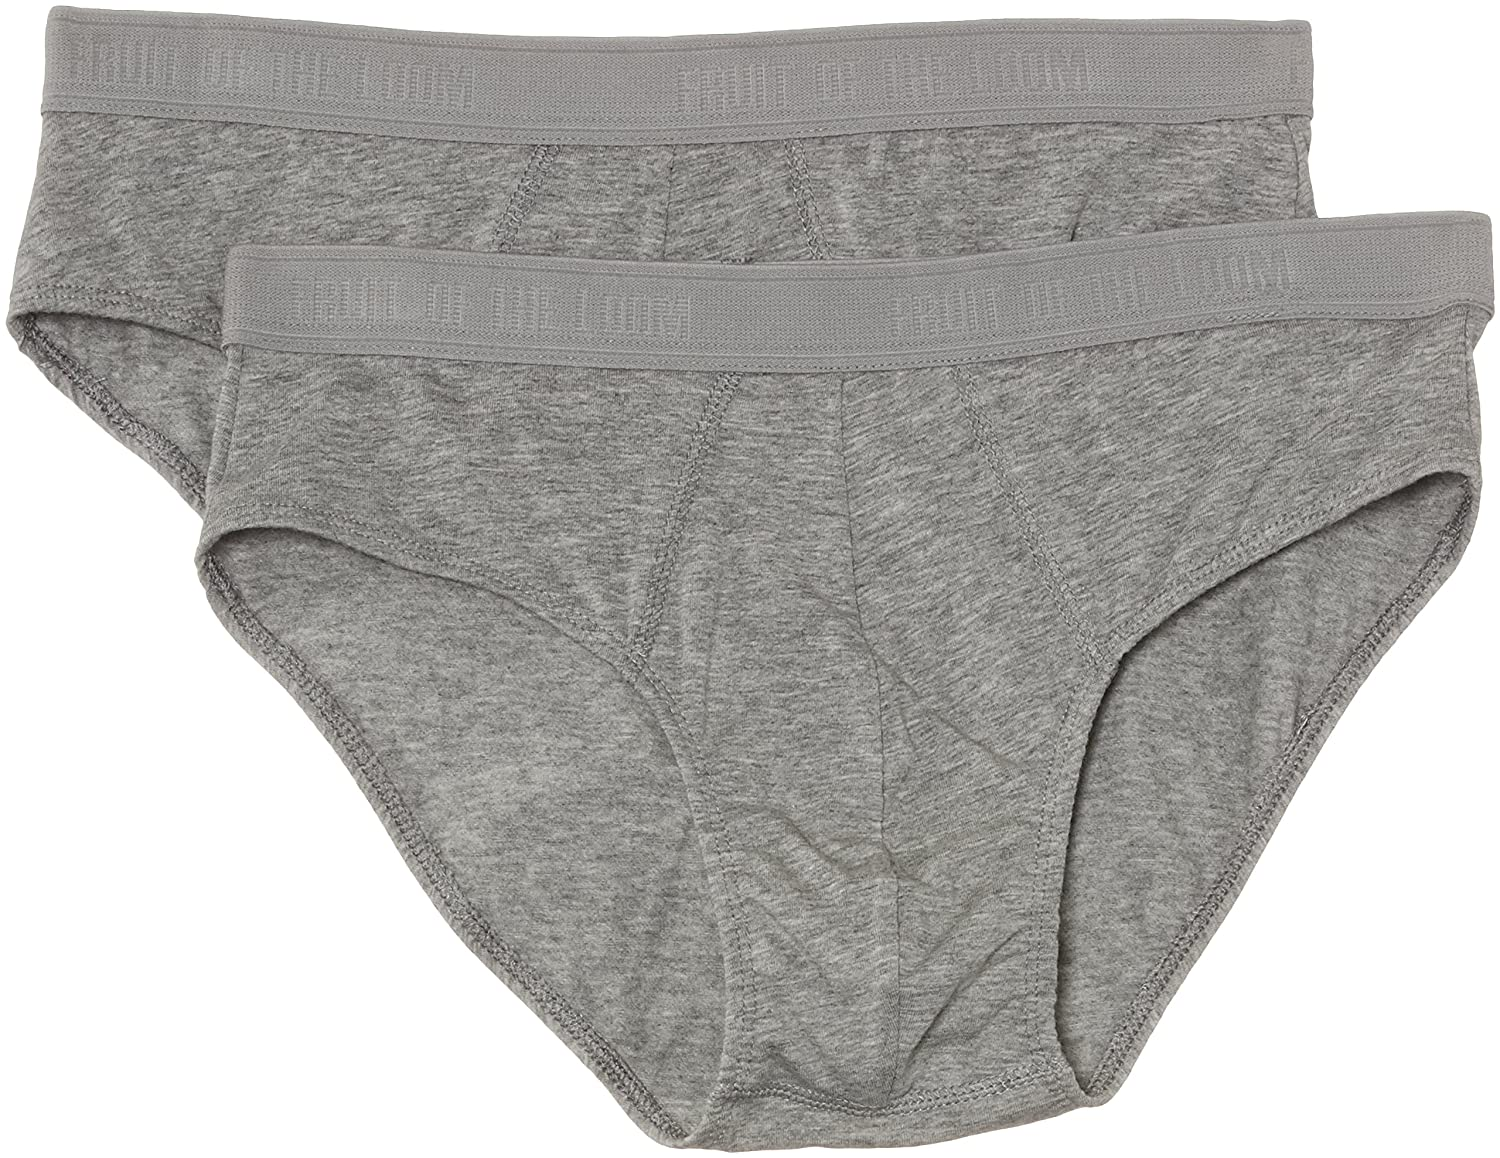 Fruit of the Loom Brief Classic Bóxer para Hombre